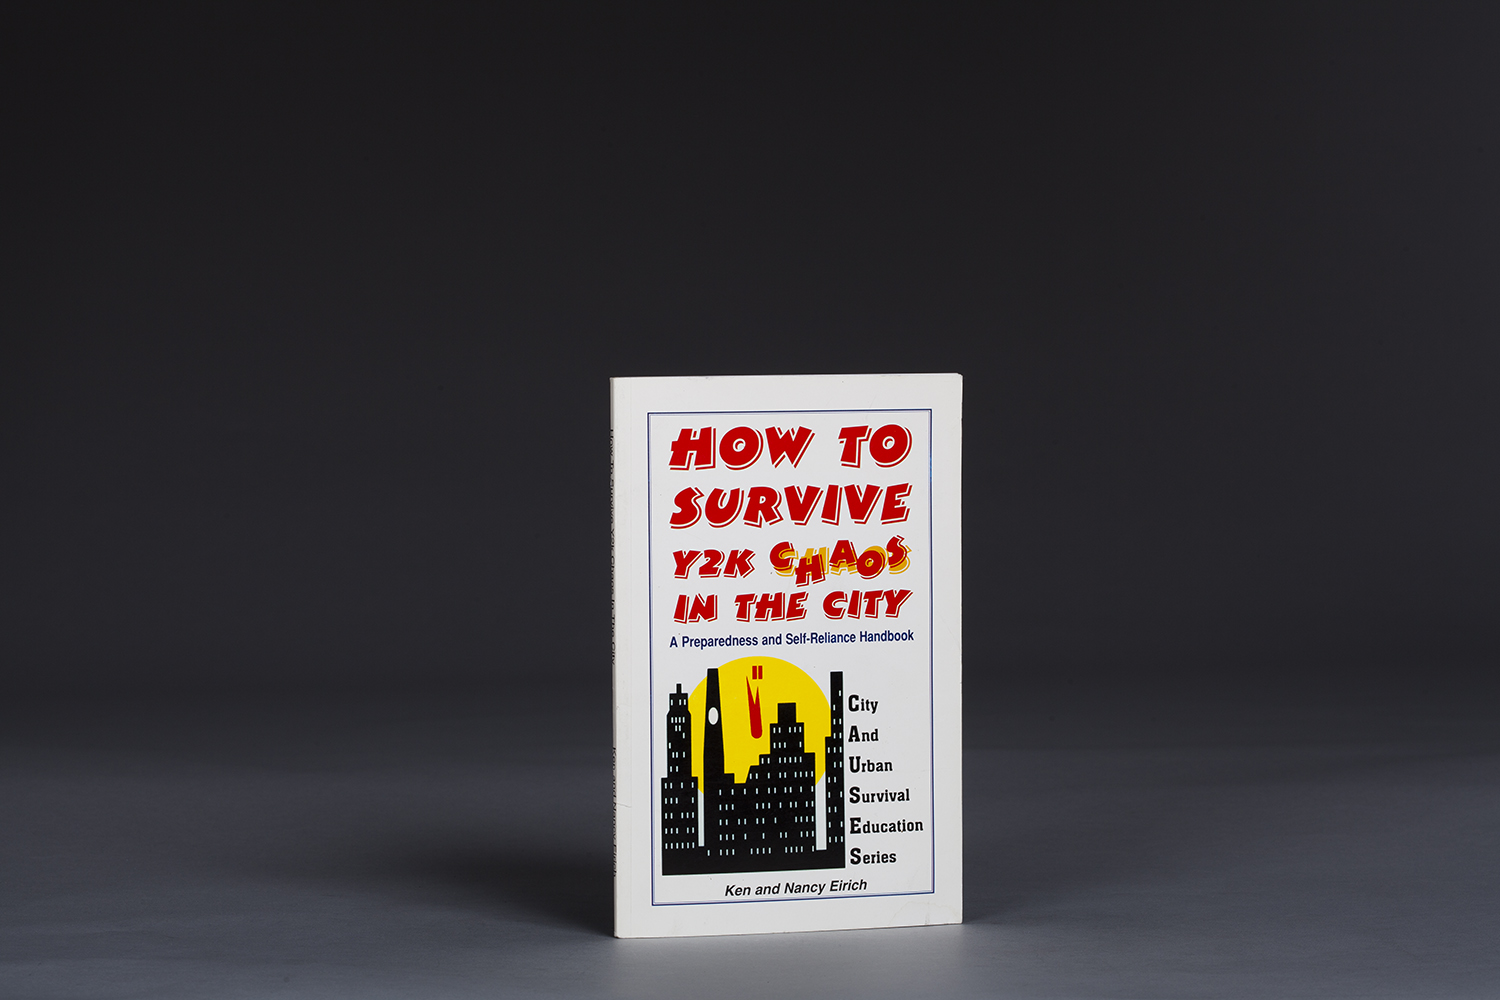 How to Survive Y2K Chaos in the City - 0562 Cover.jpg